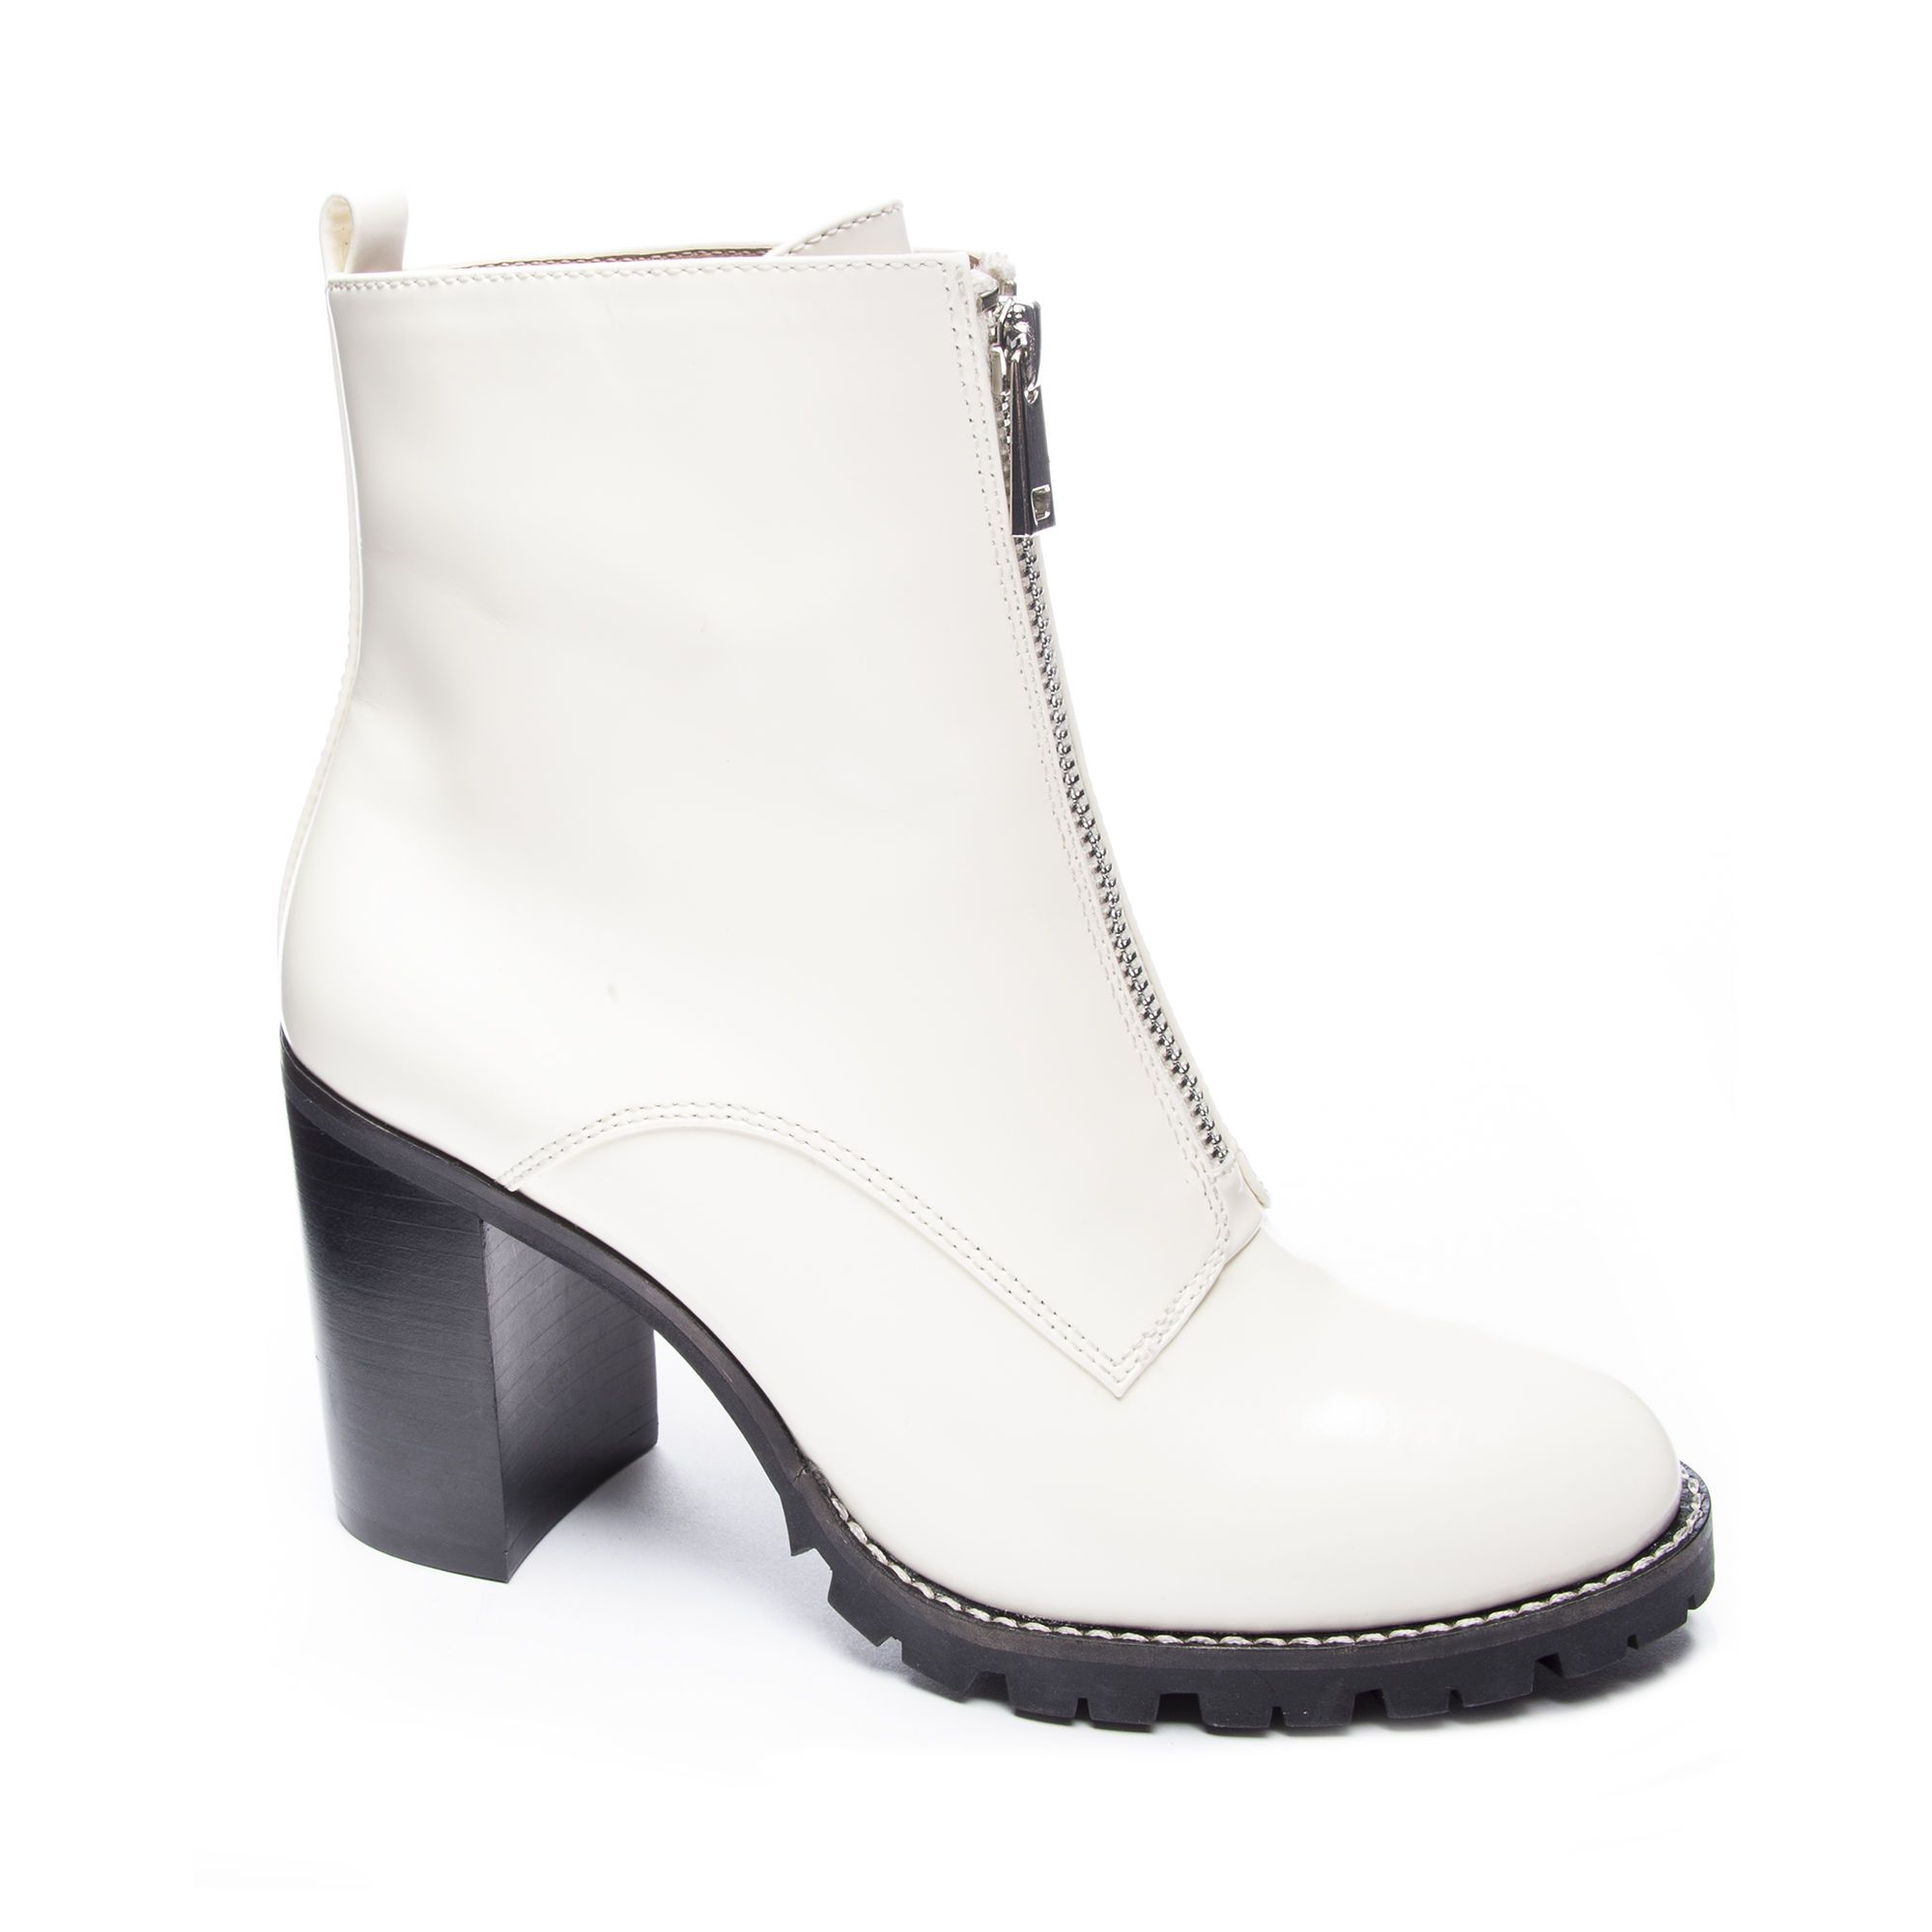 73d8029c6ef Chinese Laundry Jargon Booties in White